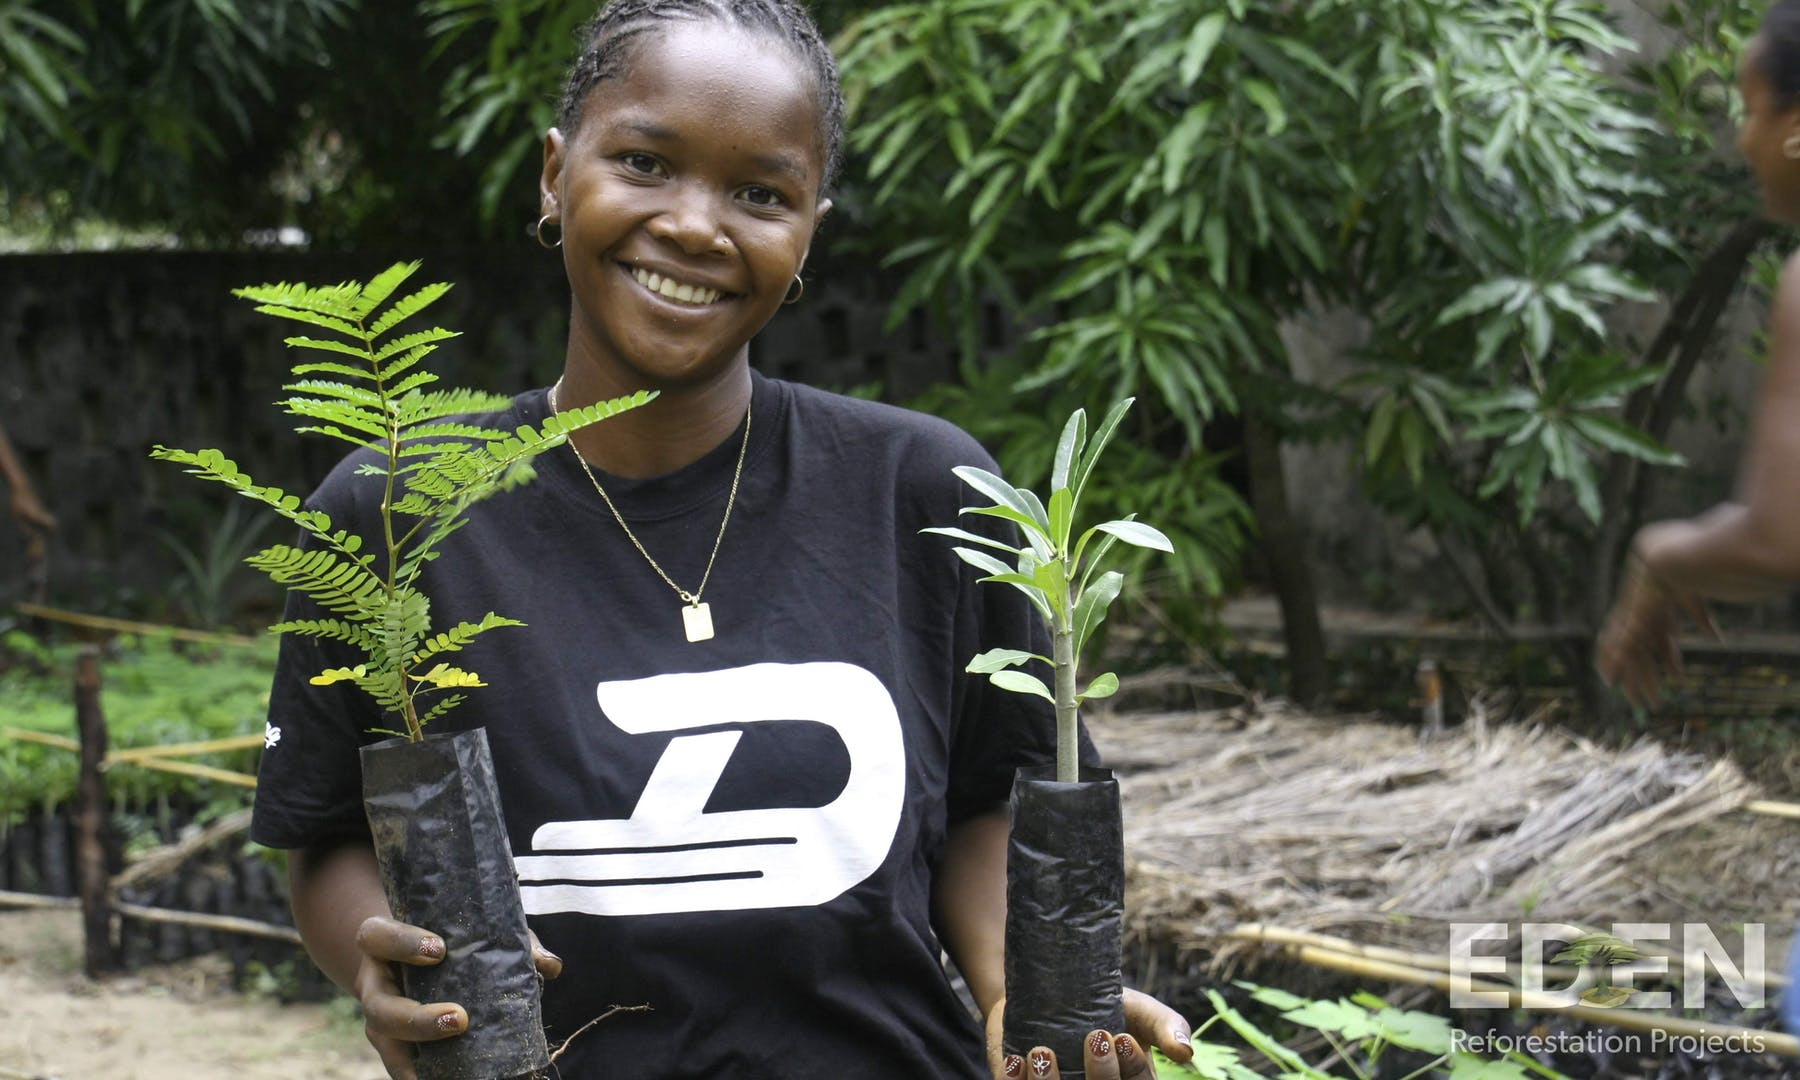 plant trees with Vitesy and Eden Rreforestation Projects